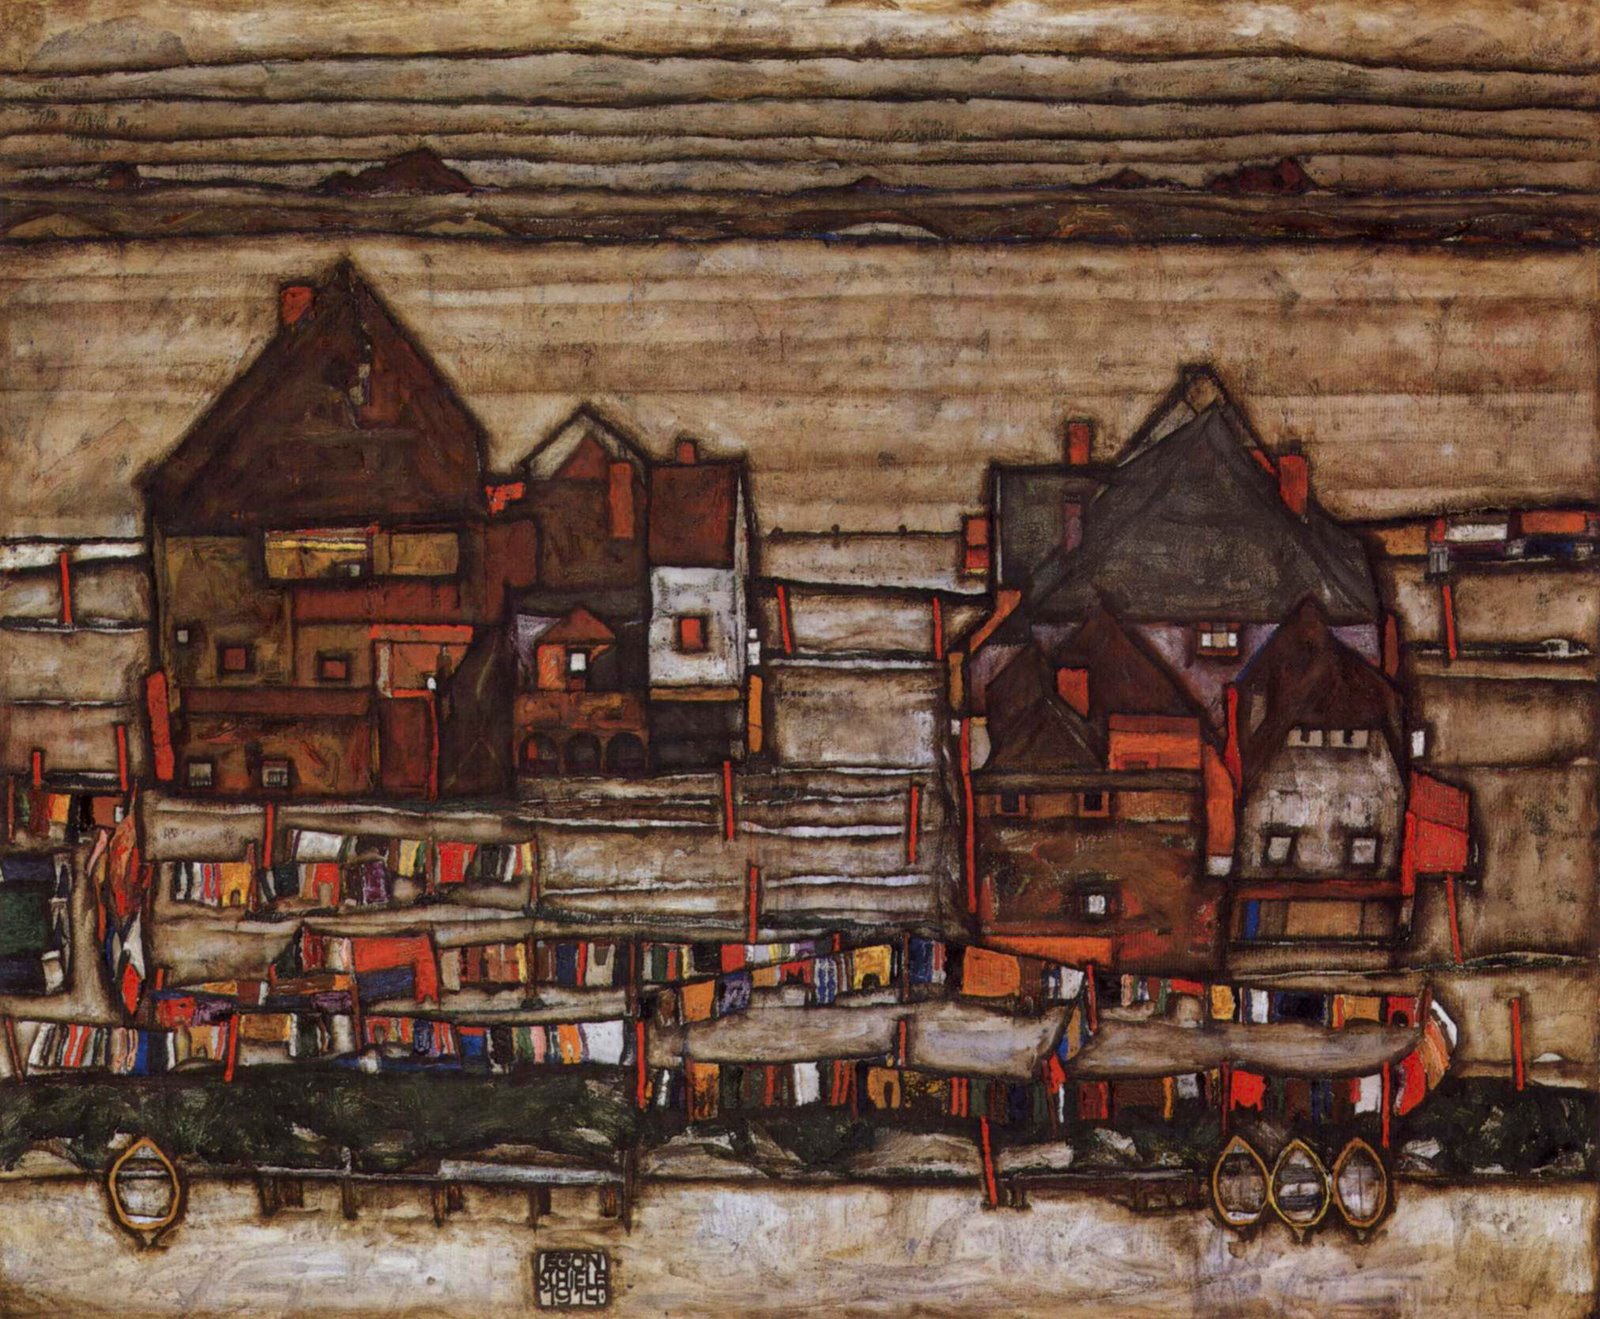 Egon Schiele&#8217;s Houses with Colorful Laundry Sells for Record $40.1 Million